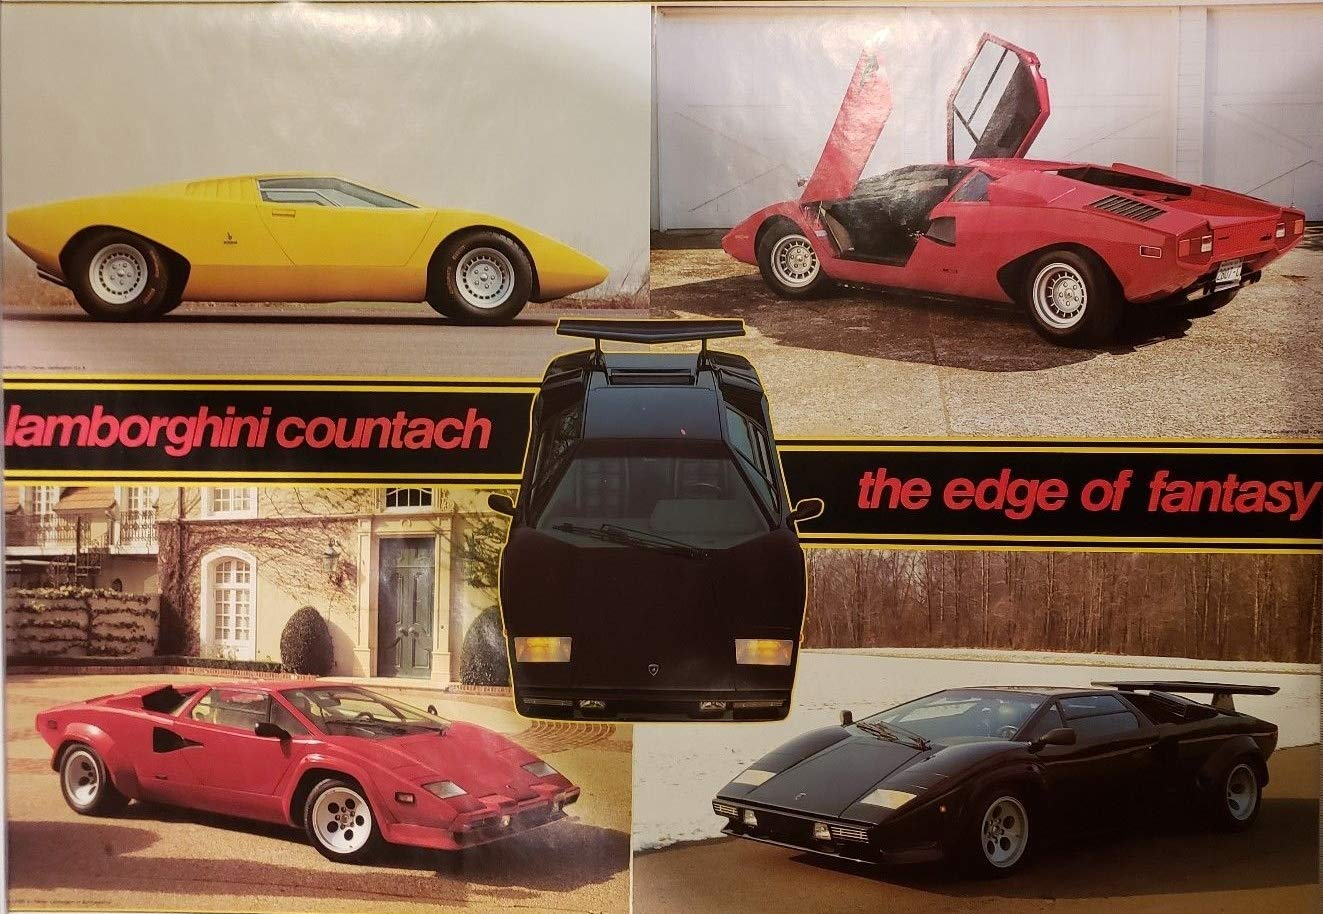 Amazon.com Countrach Lamborghini 1971 to 1984 Collage